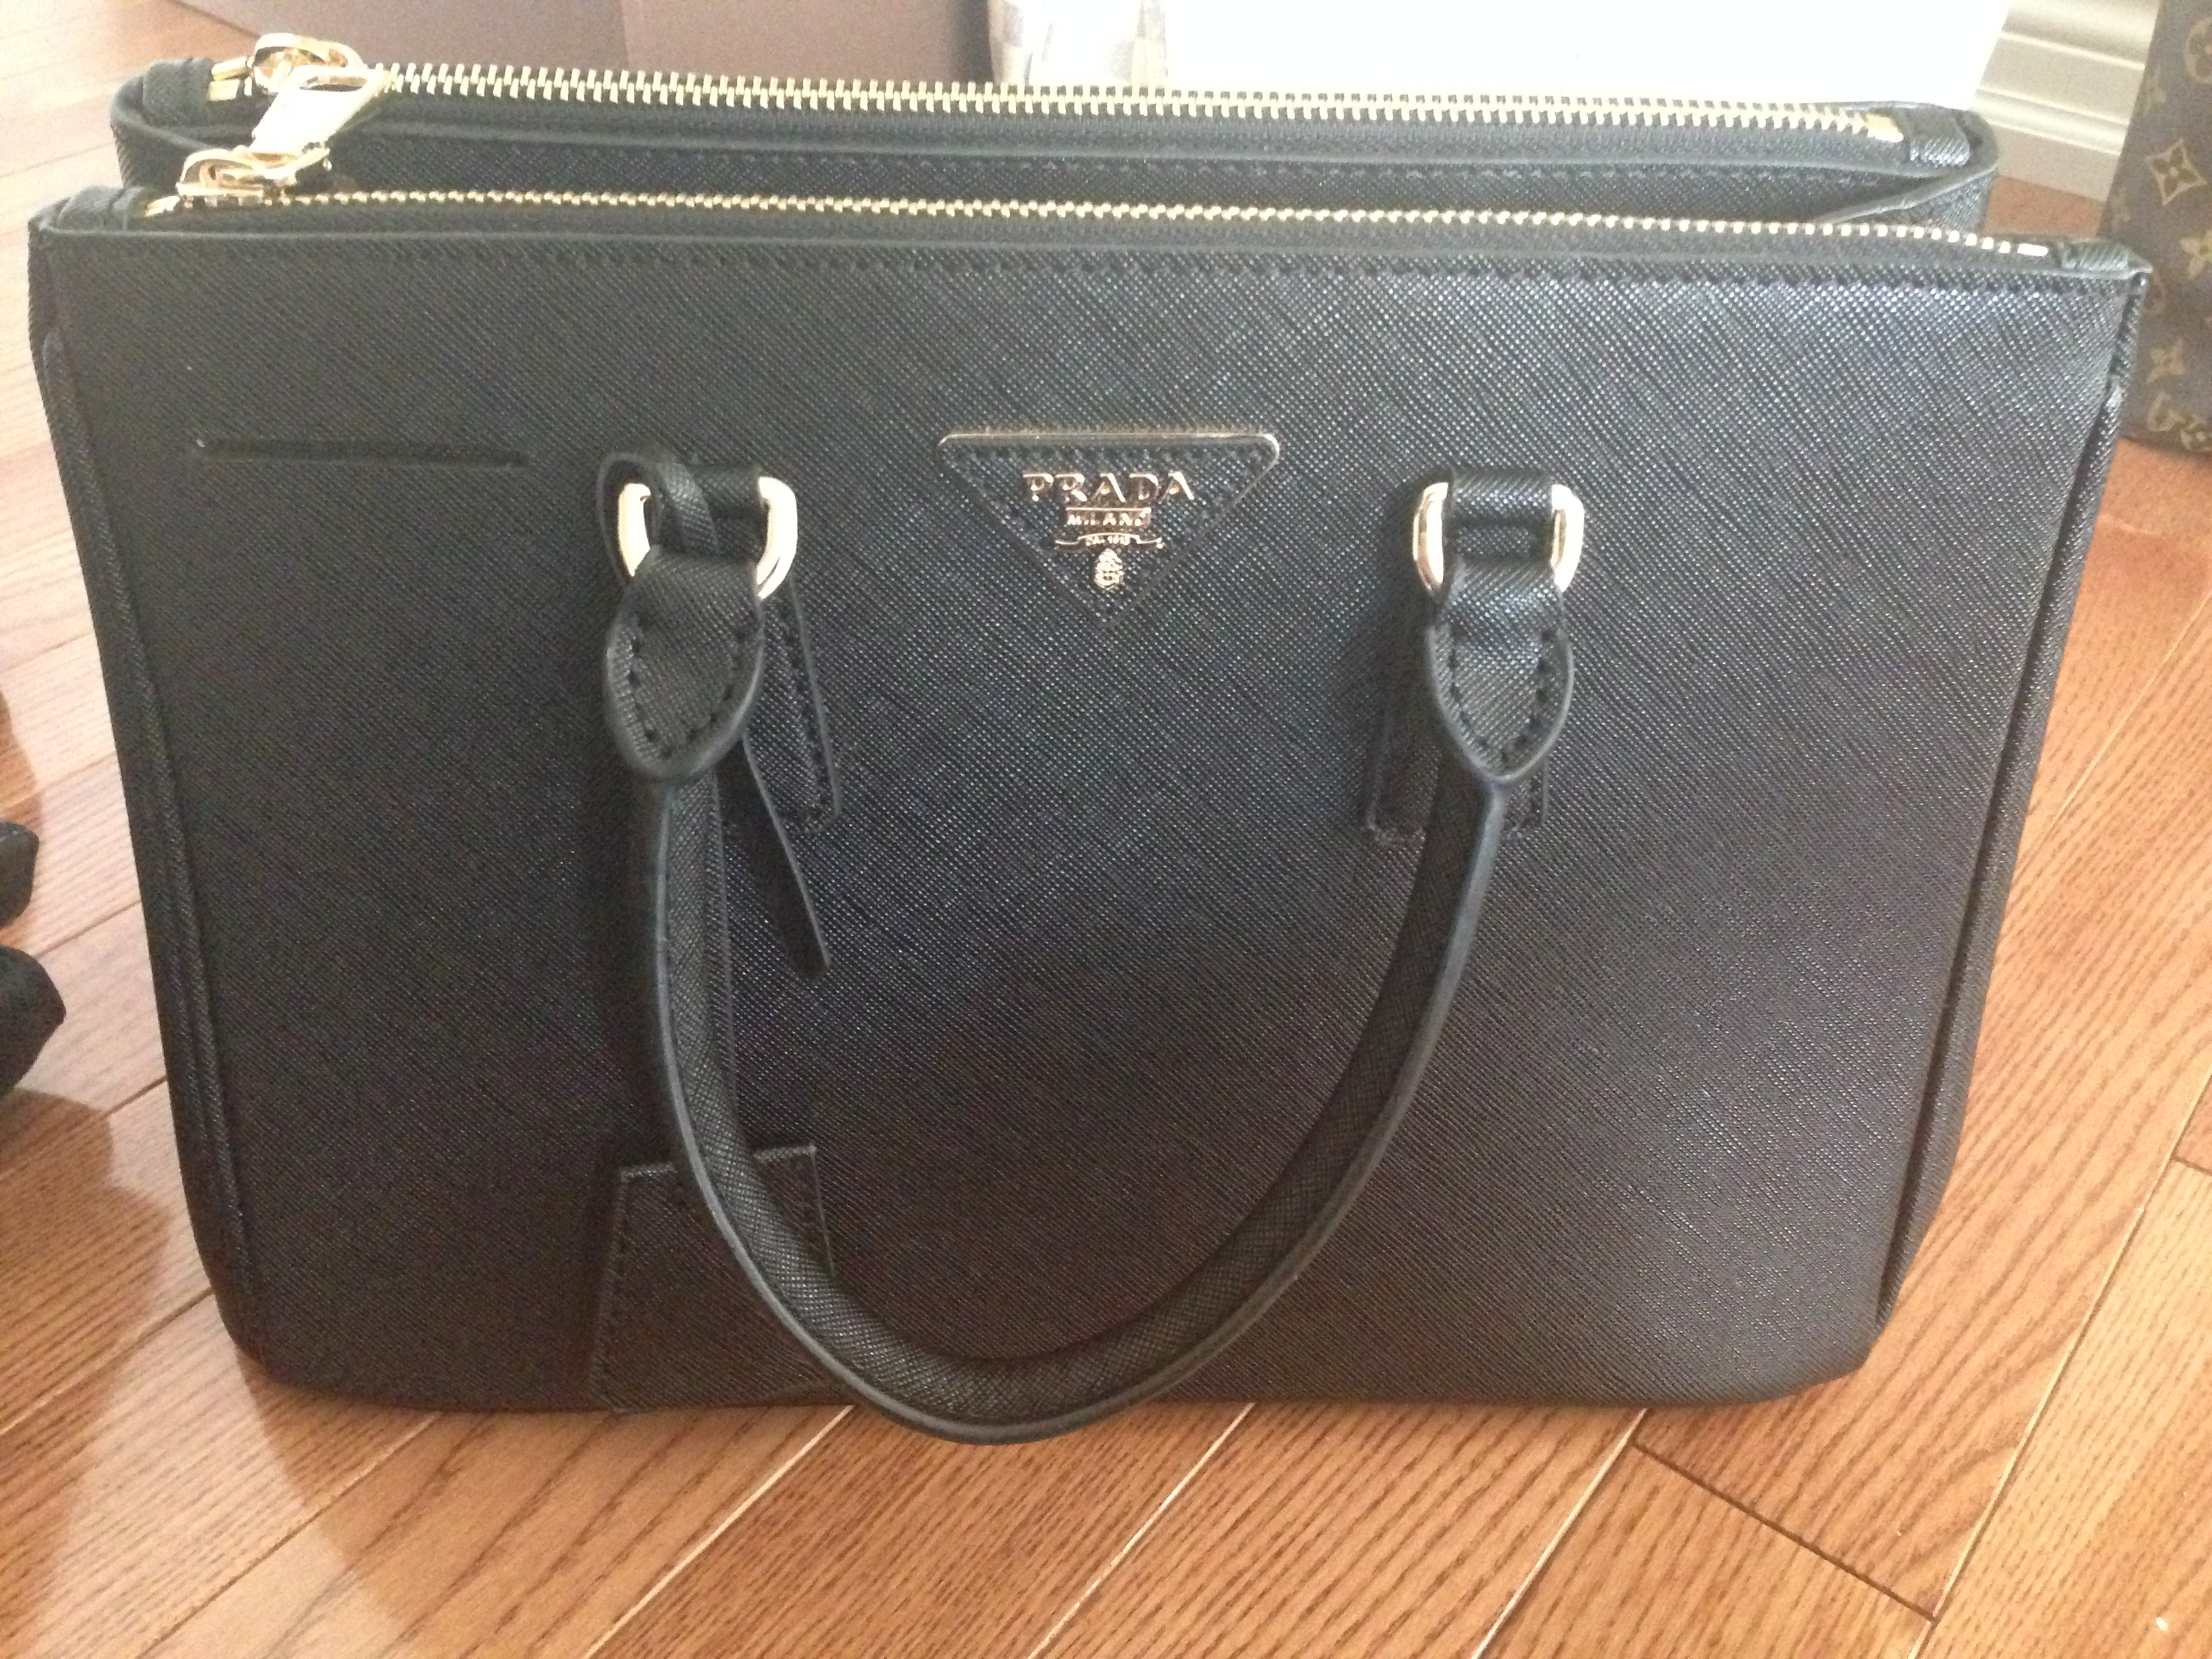 prada saffiano handbag prices